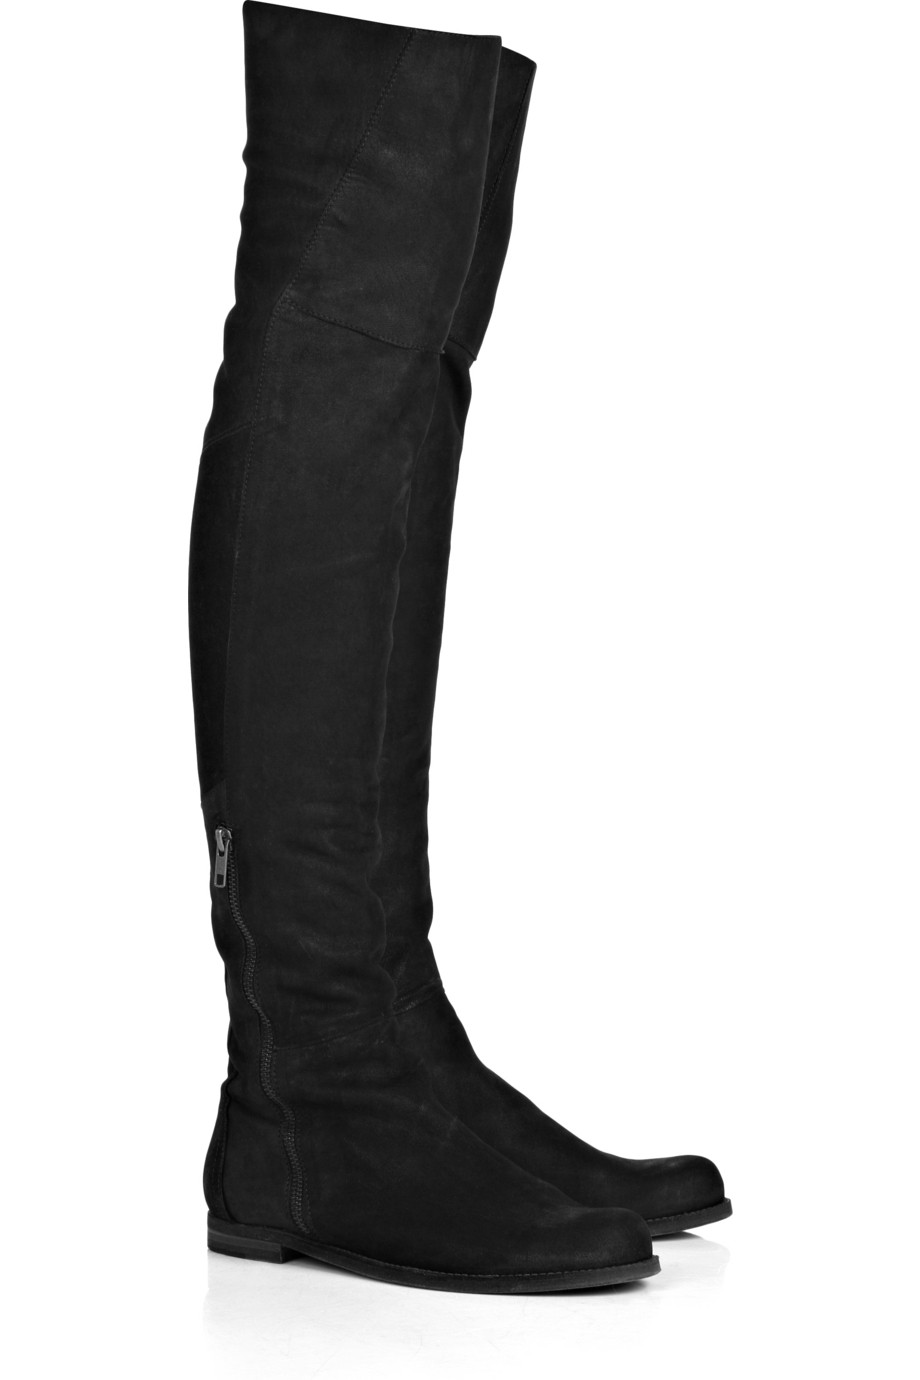 joseph flat suede the knee boots in black lyst